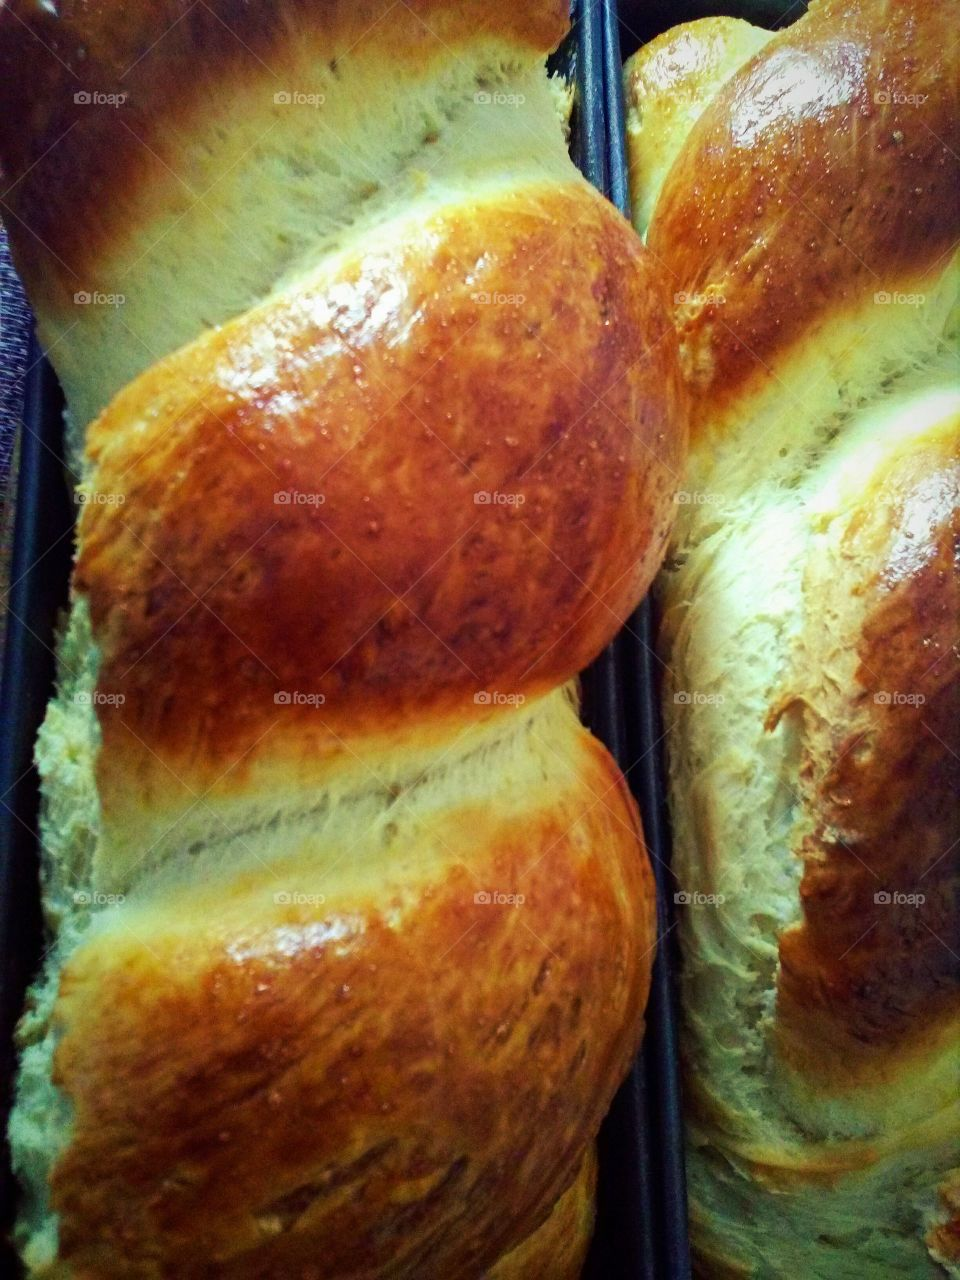 Bread made at home